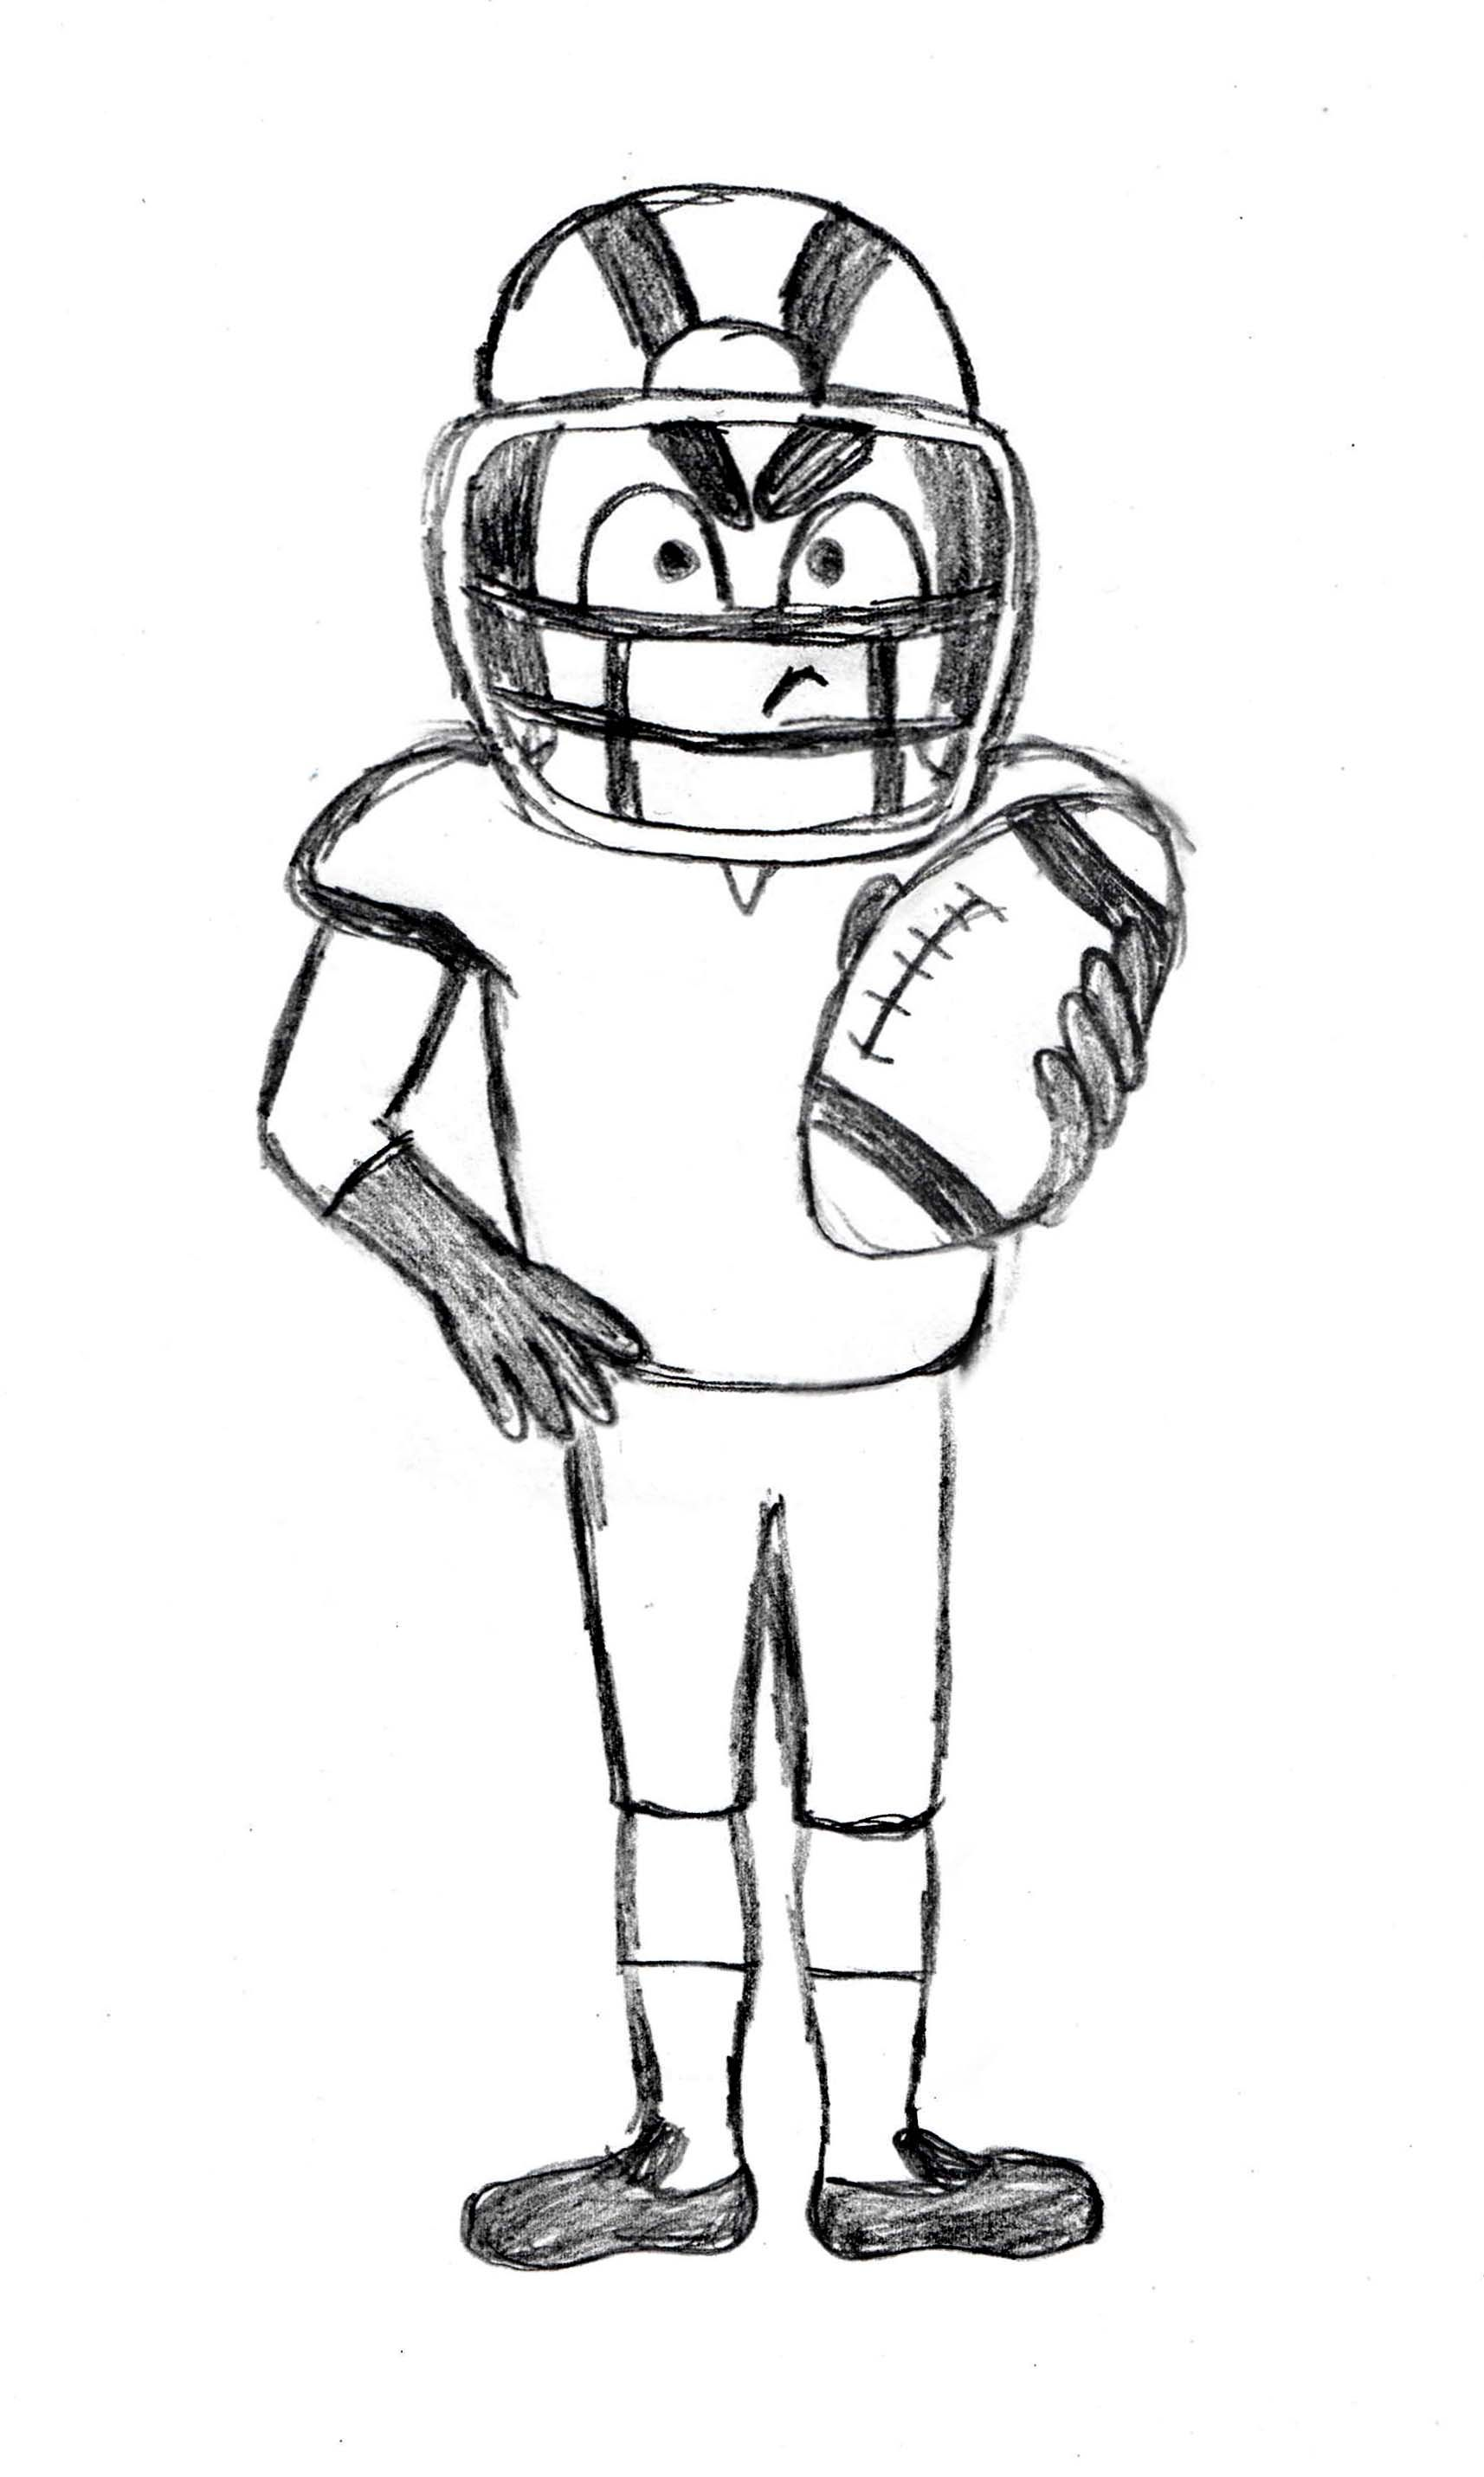 Football Drawing Easy : football, drawing, American, Football, Player, Sketch, Http://drawingmanuals.com/manual/football, -player-drawing-tut…, Drawing,, Players